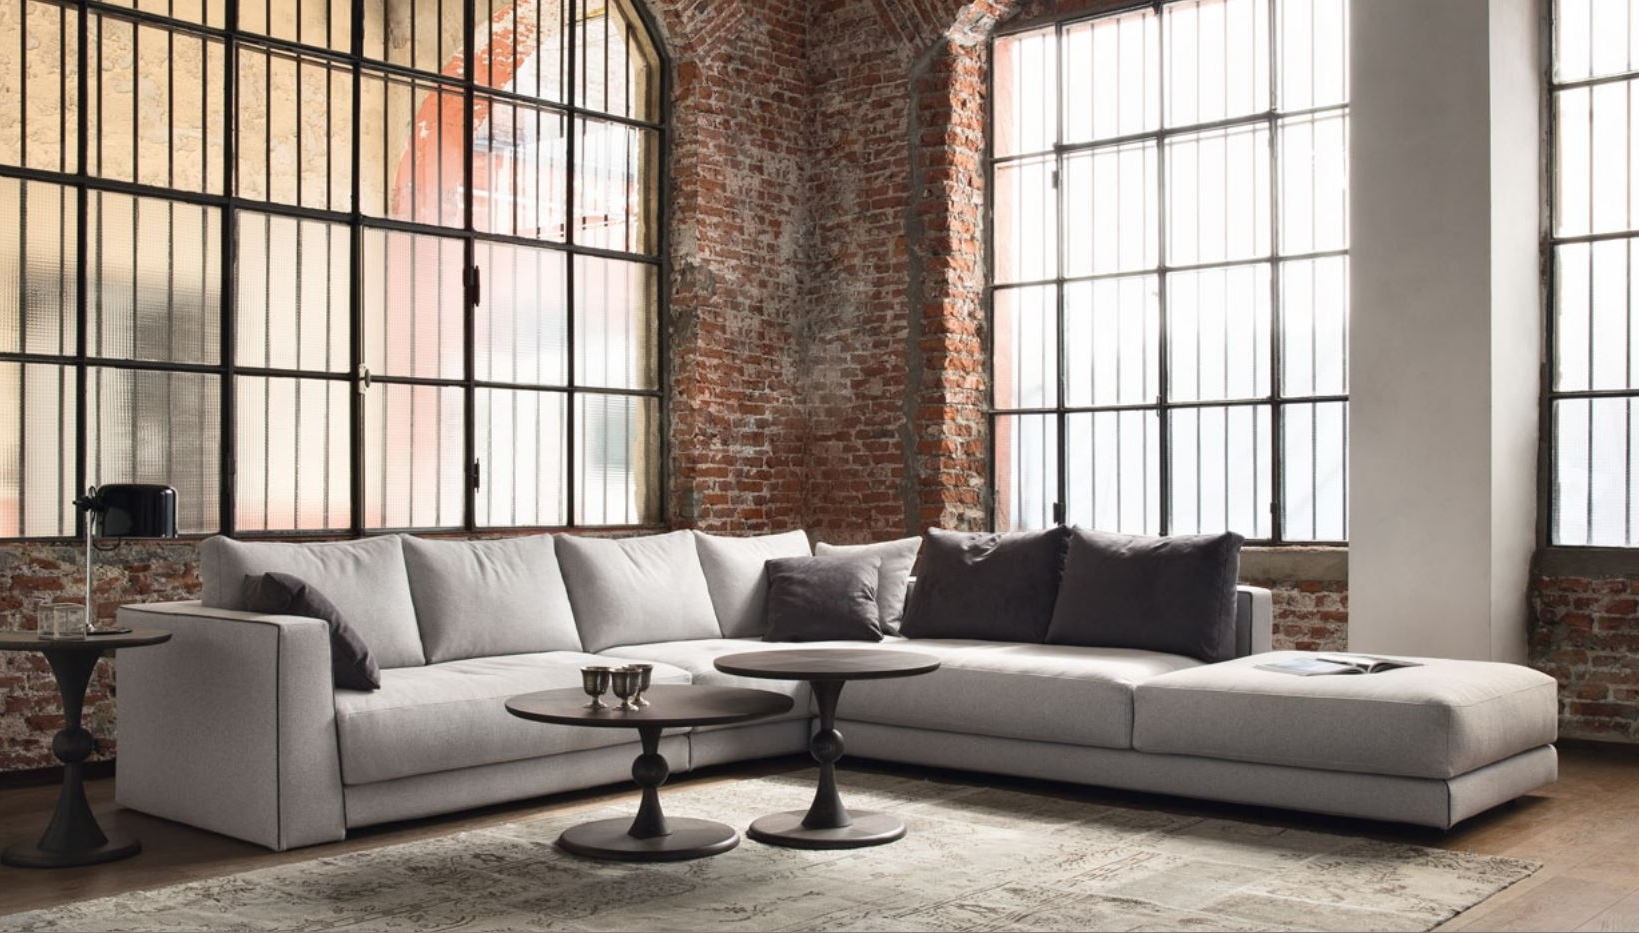 2019 Long Modern Sofas Pertaining To Italian Sofas At Momentoitalia – Modern Sofas,designer Sofas (View 11 of 20)